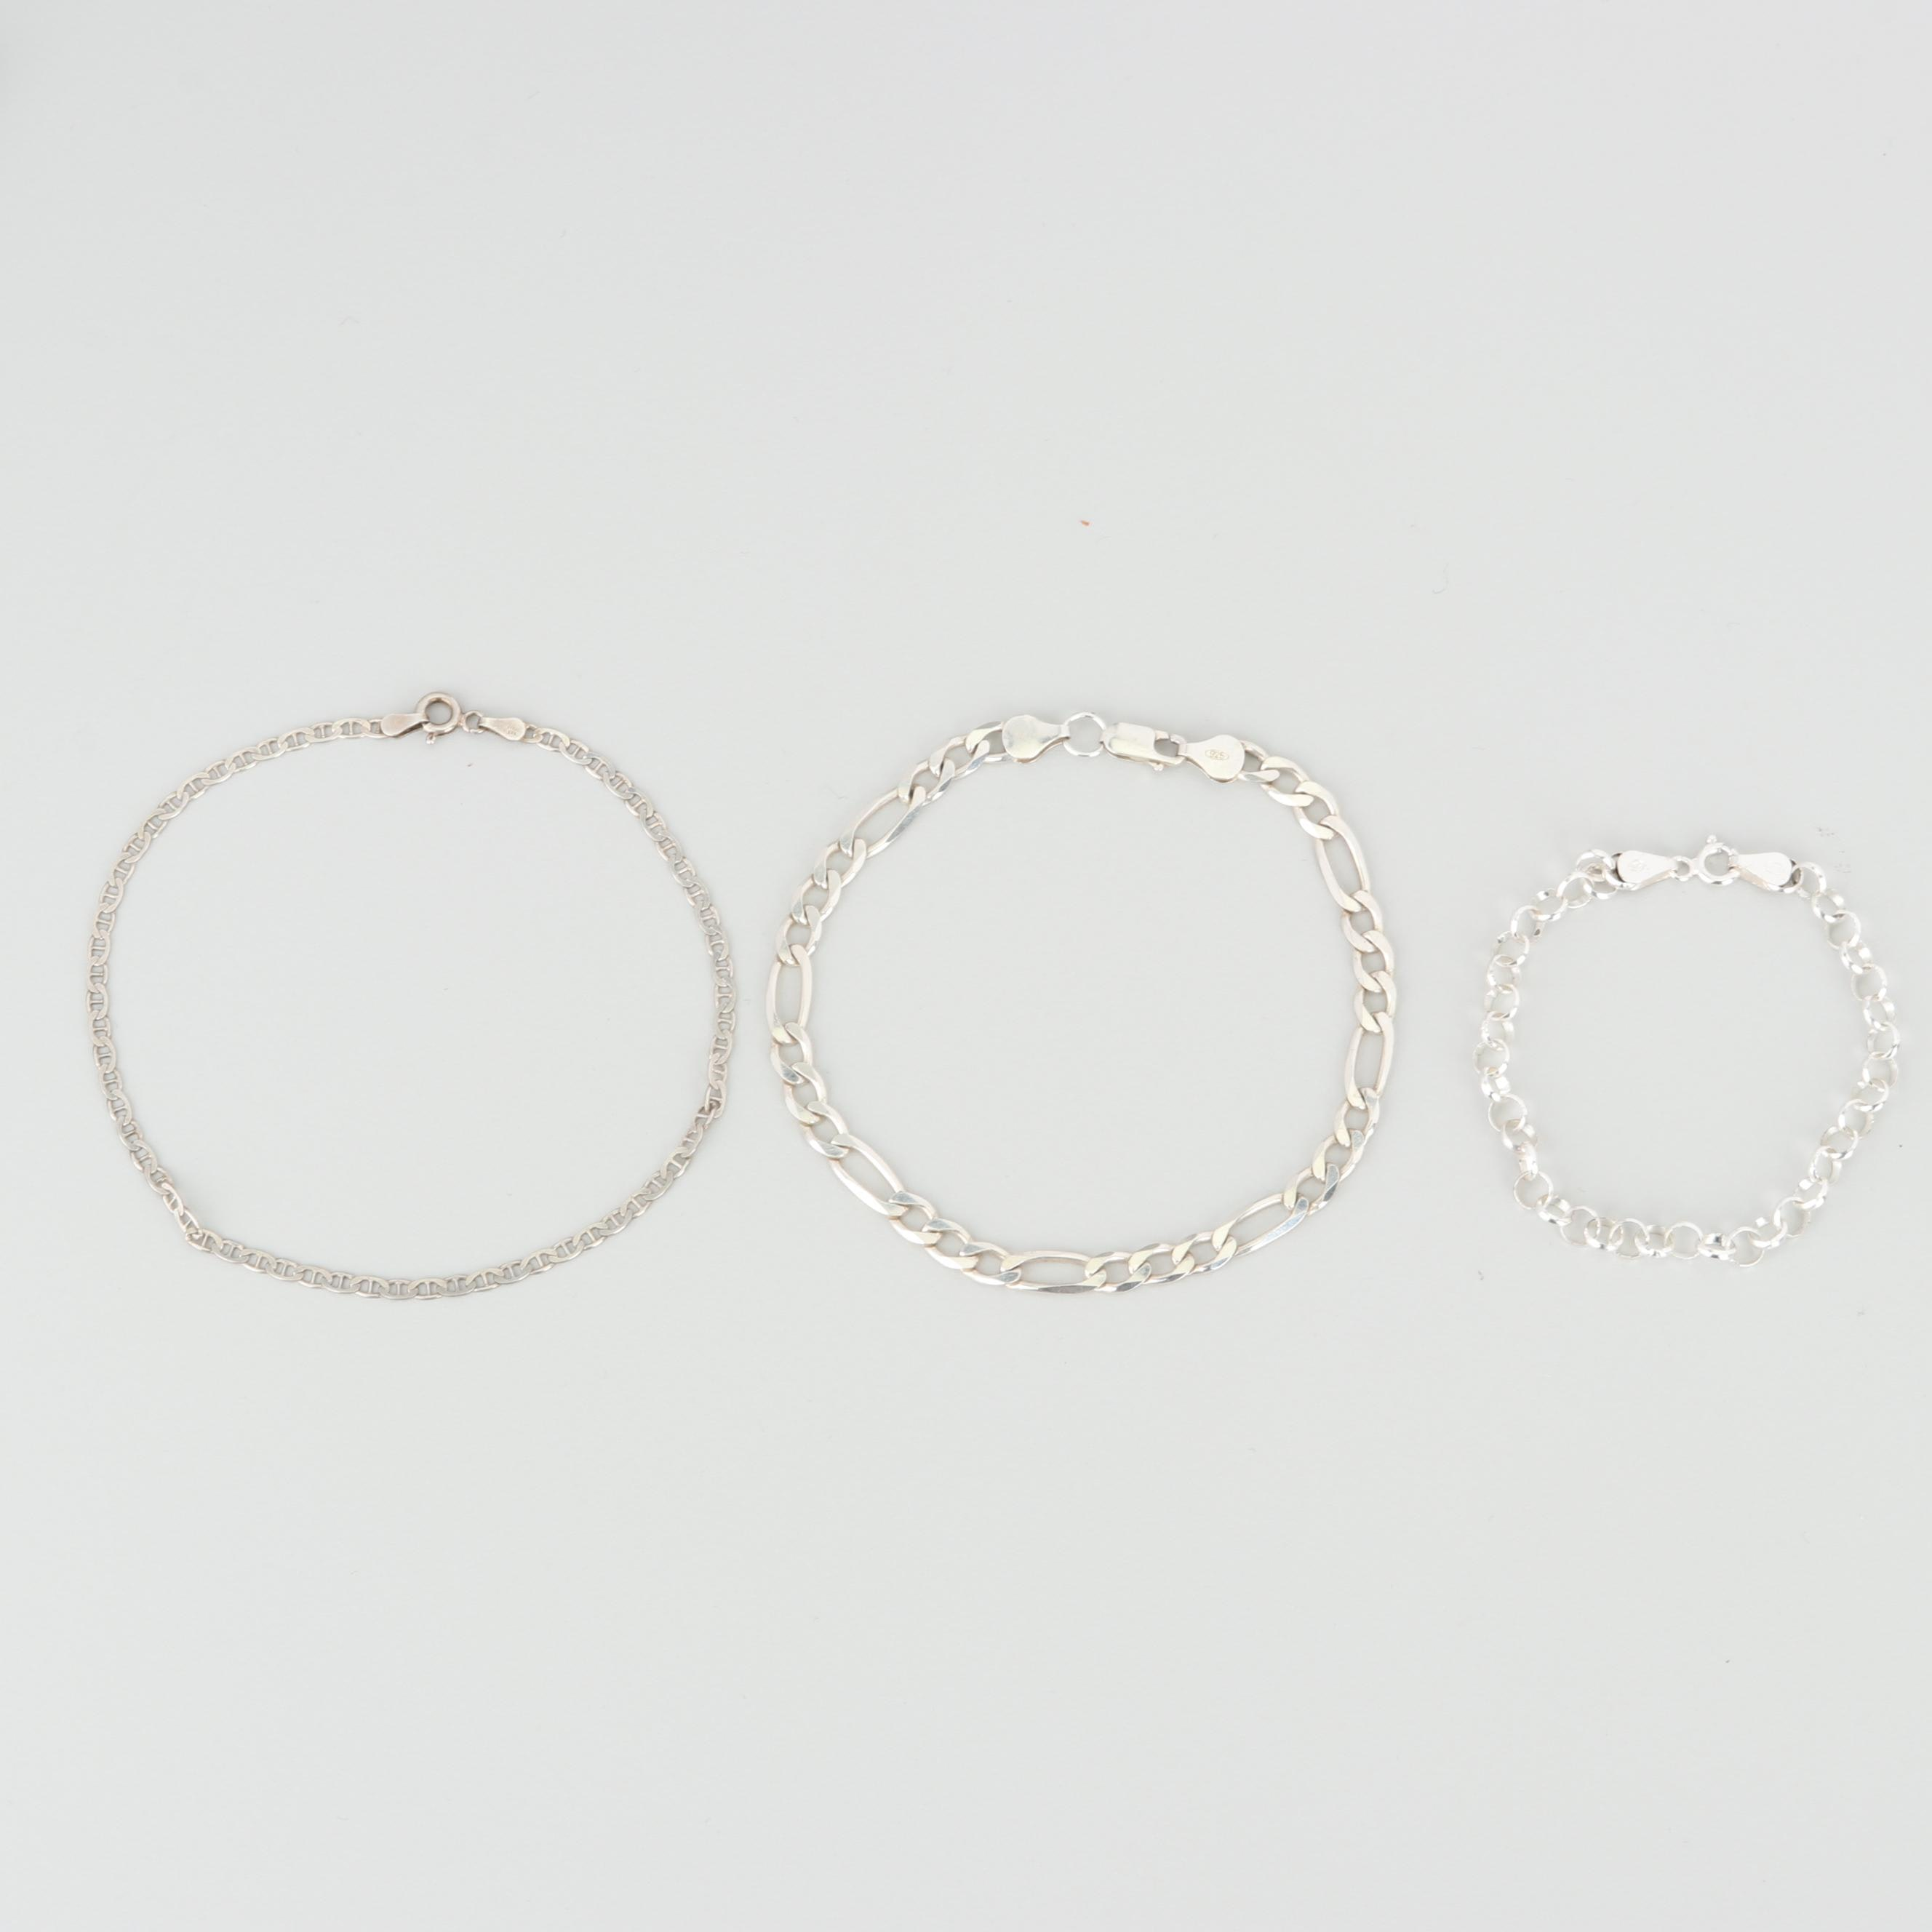 Sterling Silver Figaro, Gucci Link, and Round Link Chain Bracelets